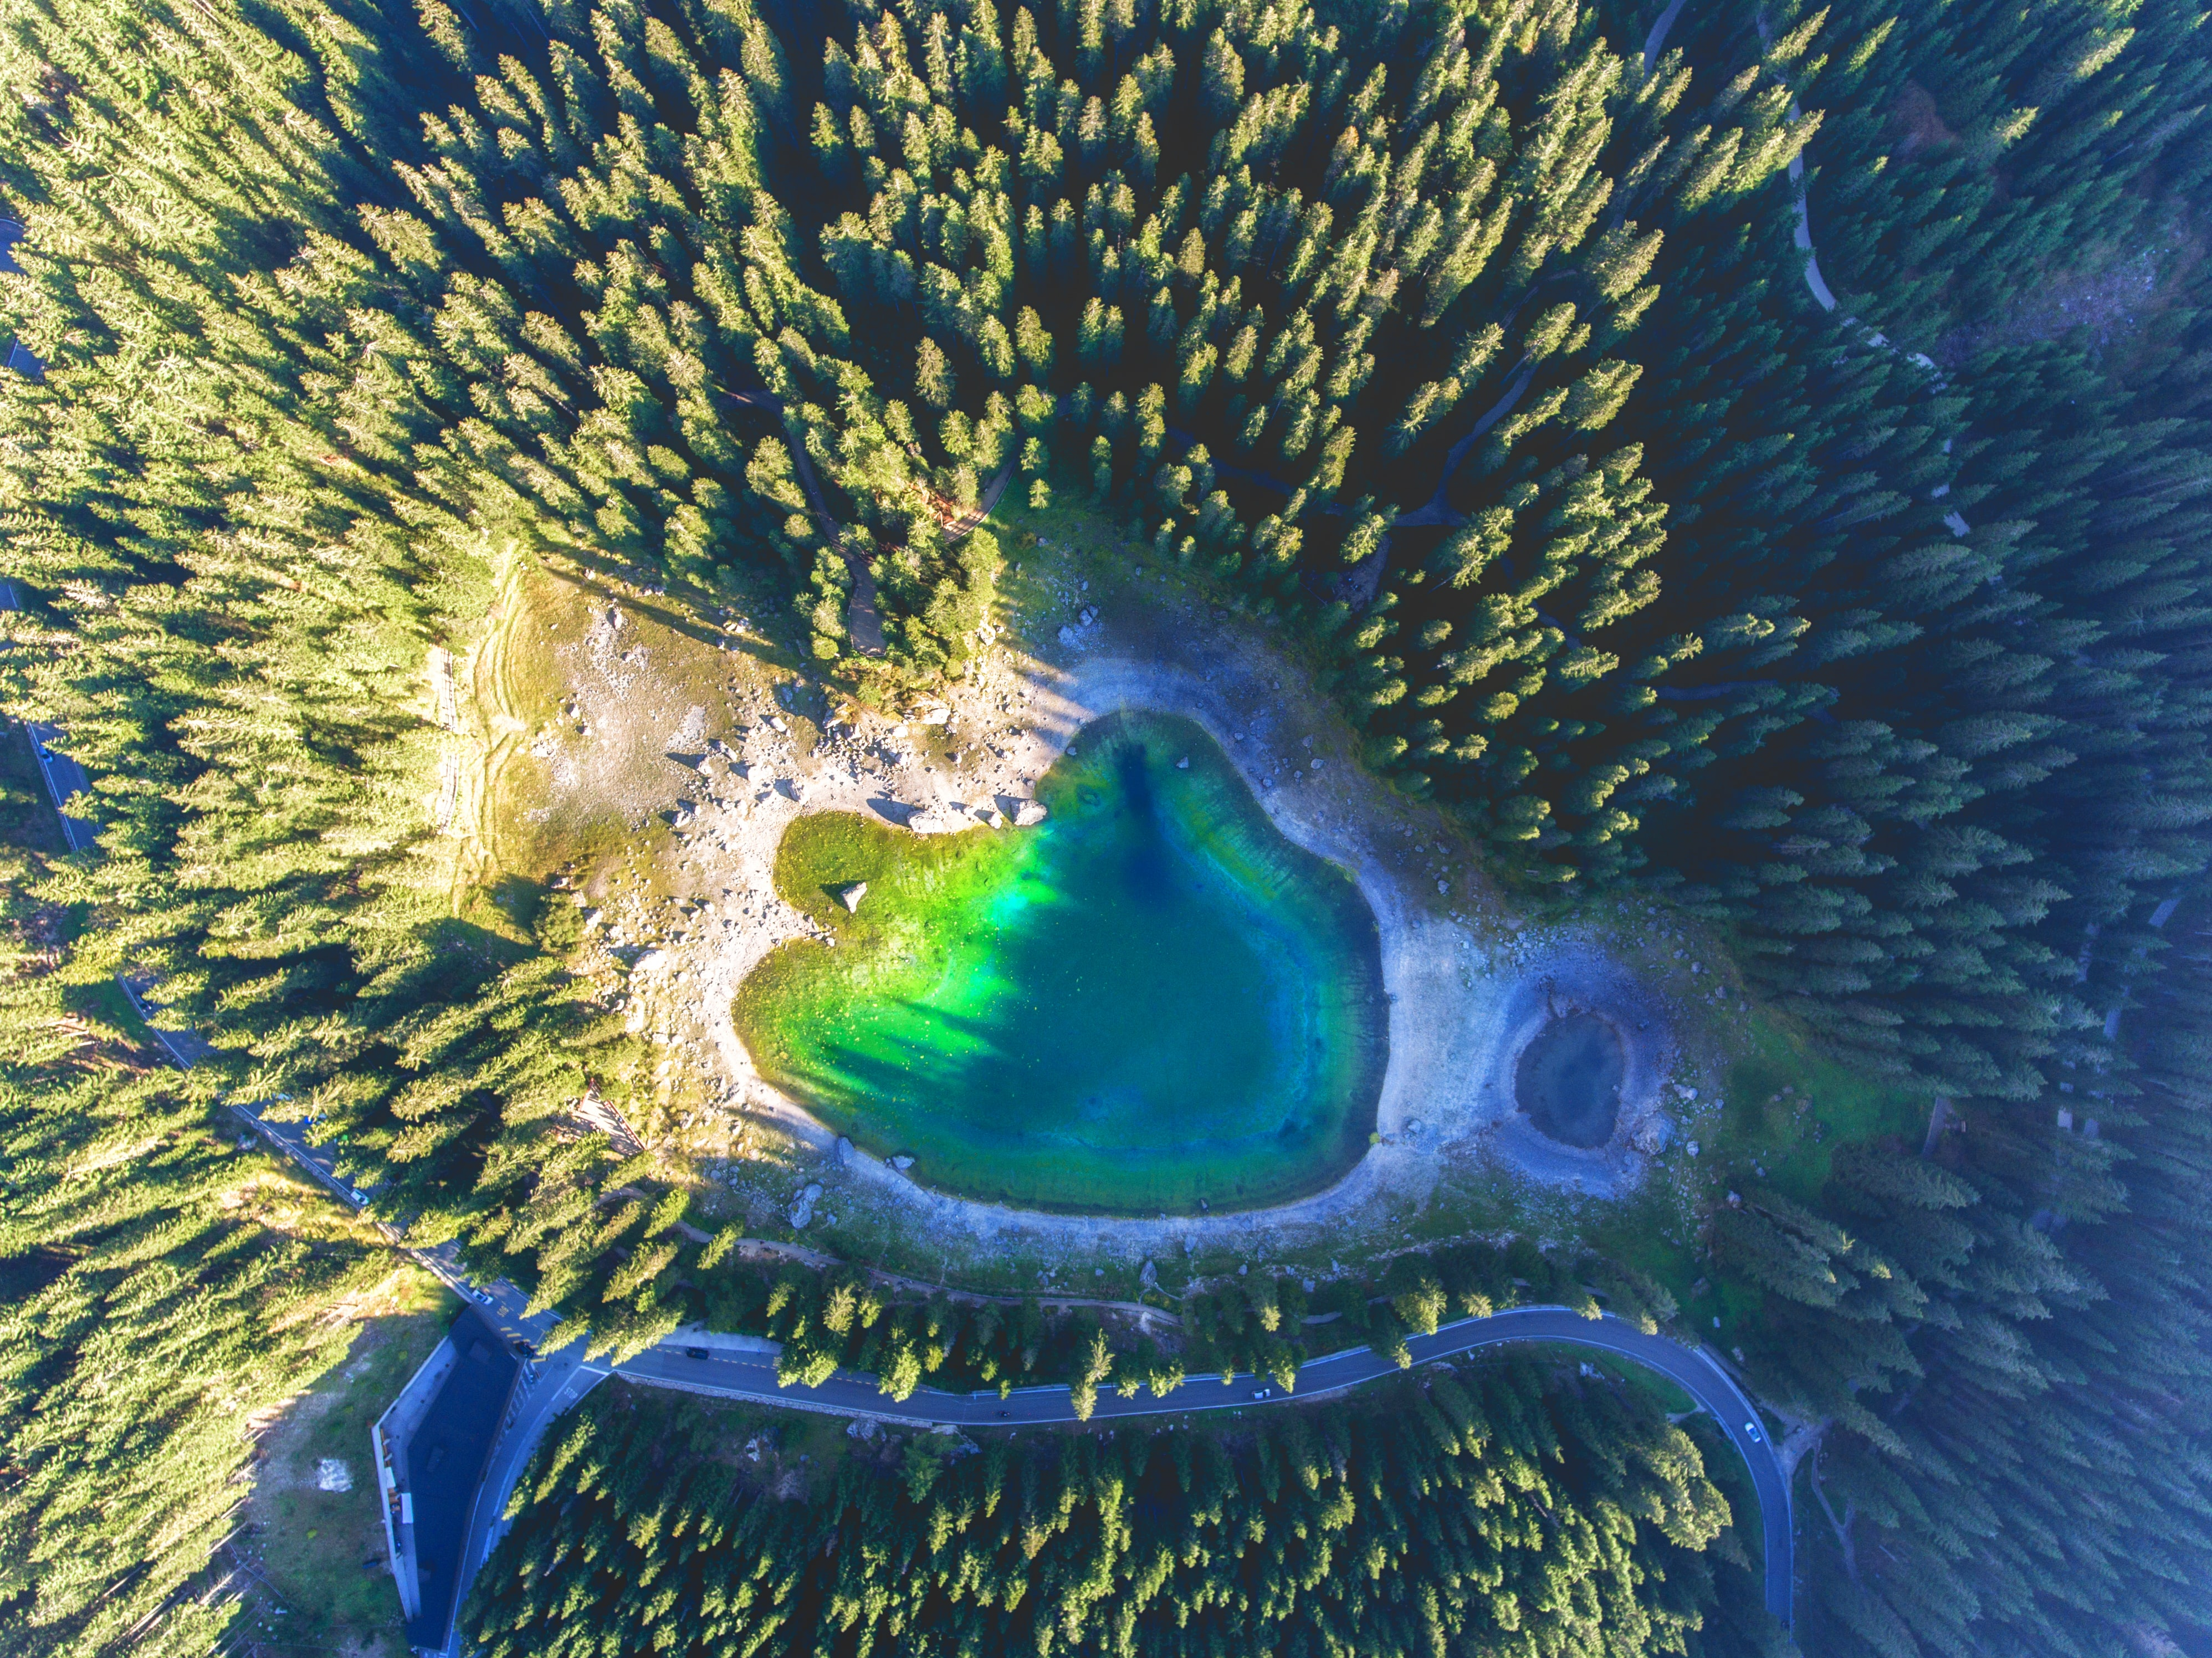 green swamp lake surrounded by trees